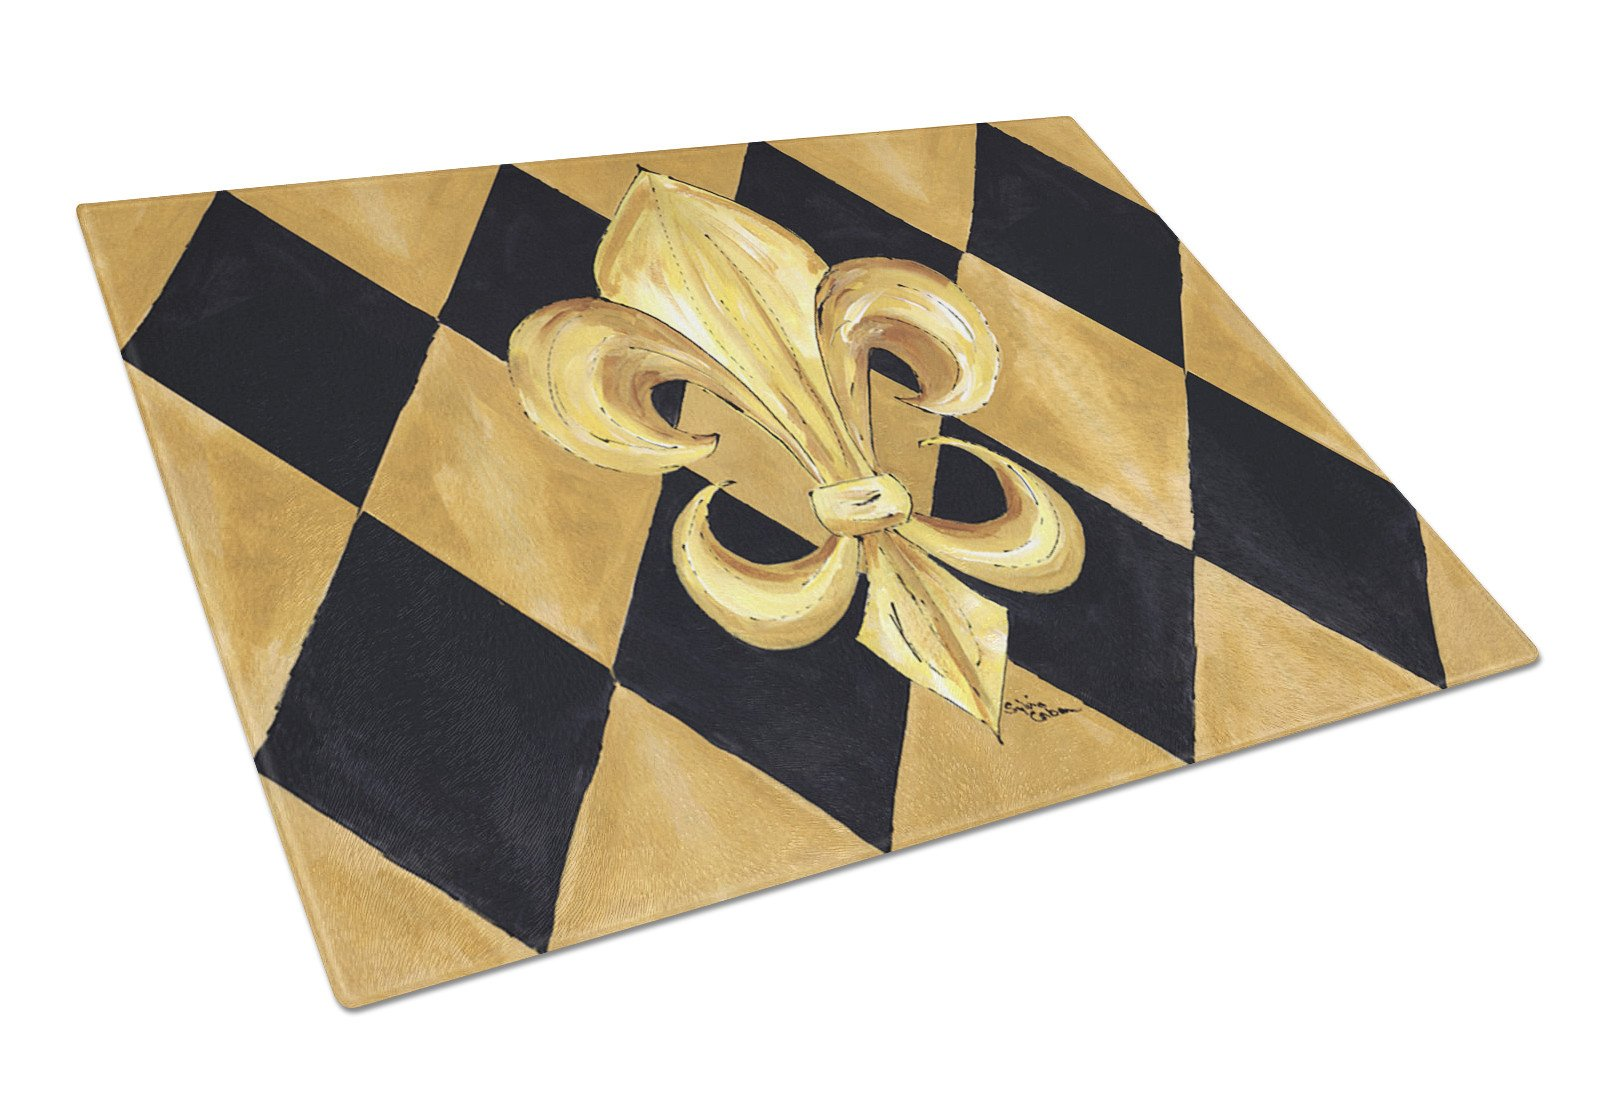 Black and Gold Fleur de lis New Orleans Glass Cutting Board Large by Caroline's Treasures